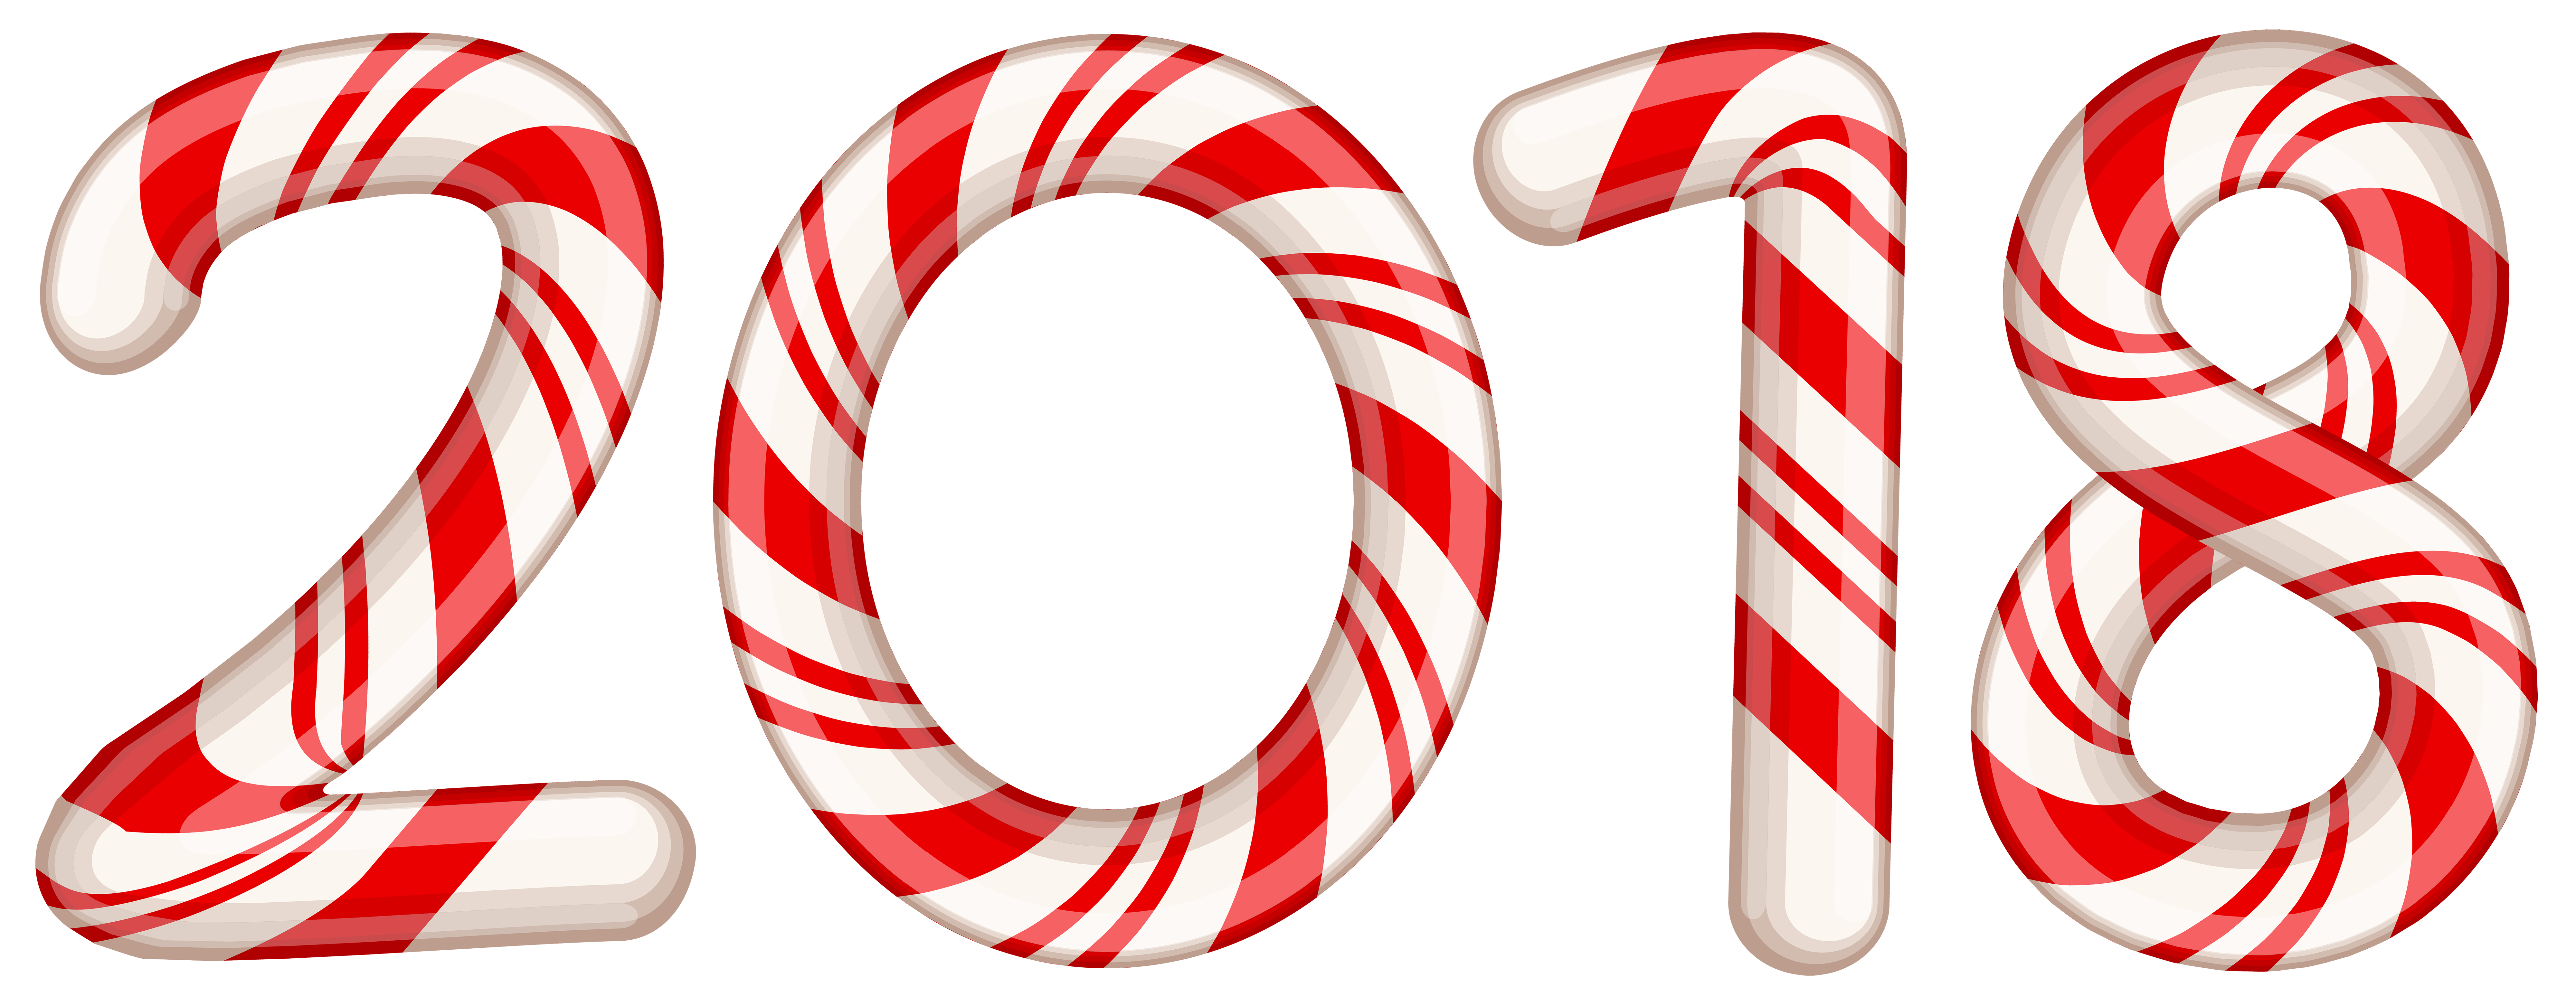 2018 Candy Cane Red PNG Clip Art Image.